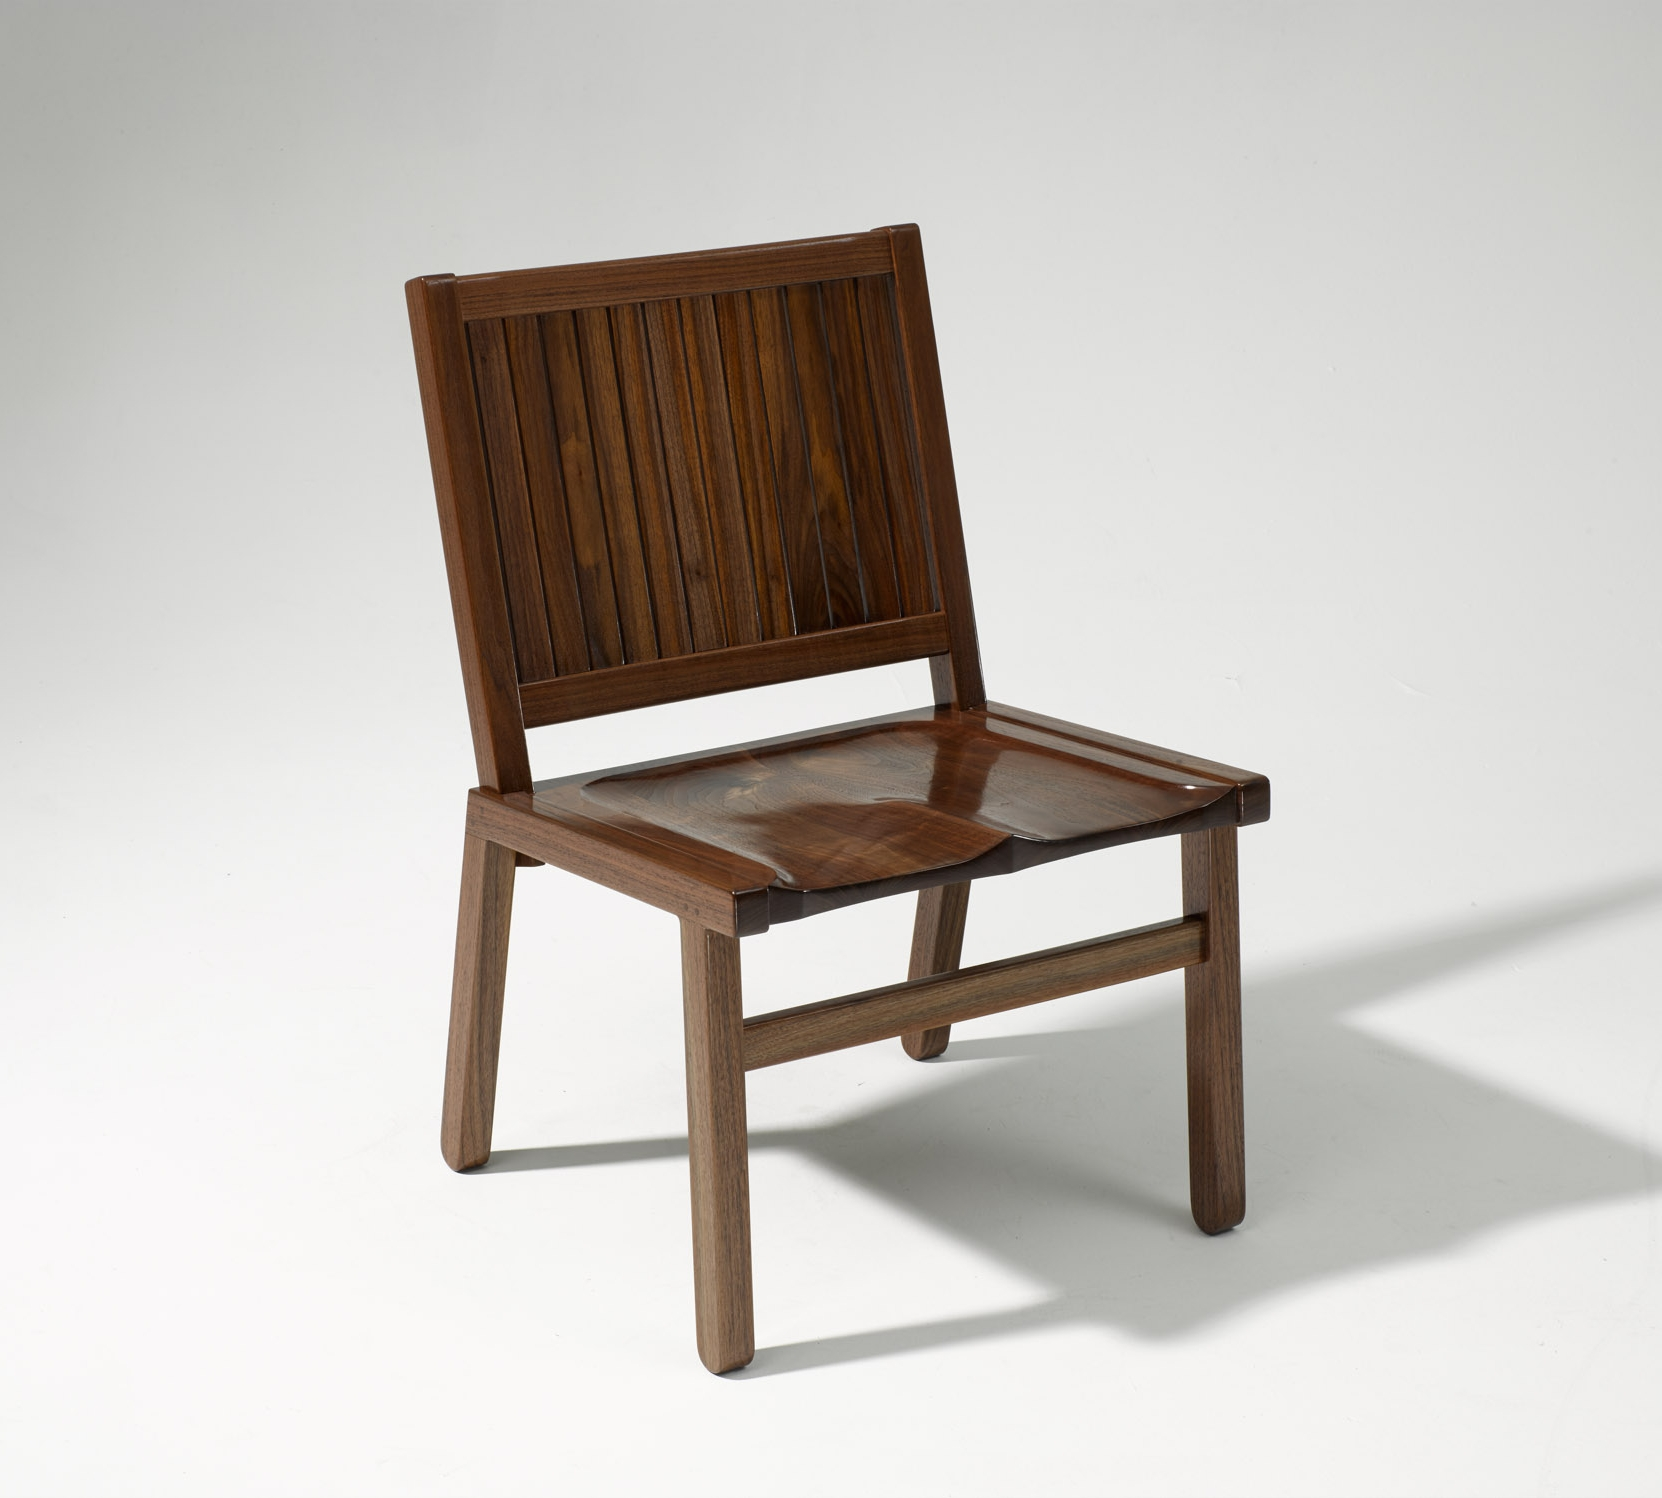 Wooden Chair Product Photography